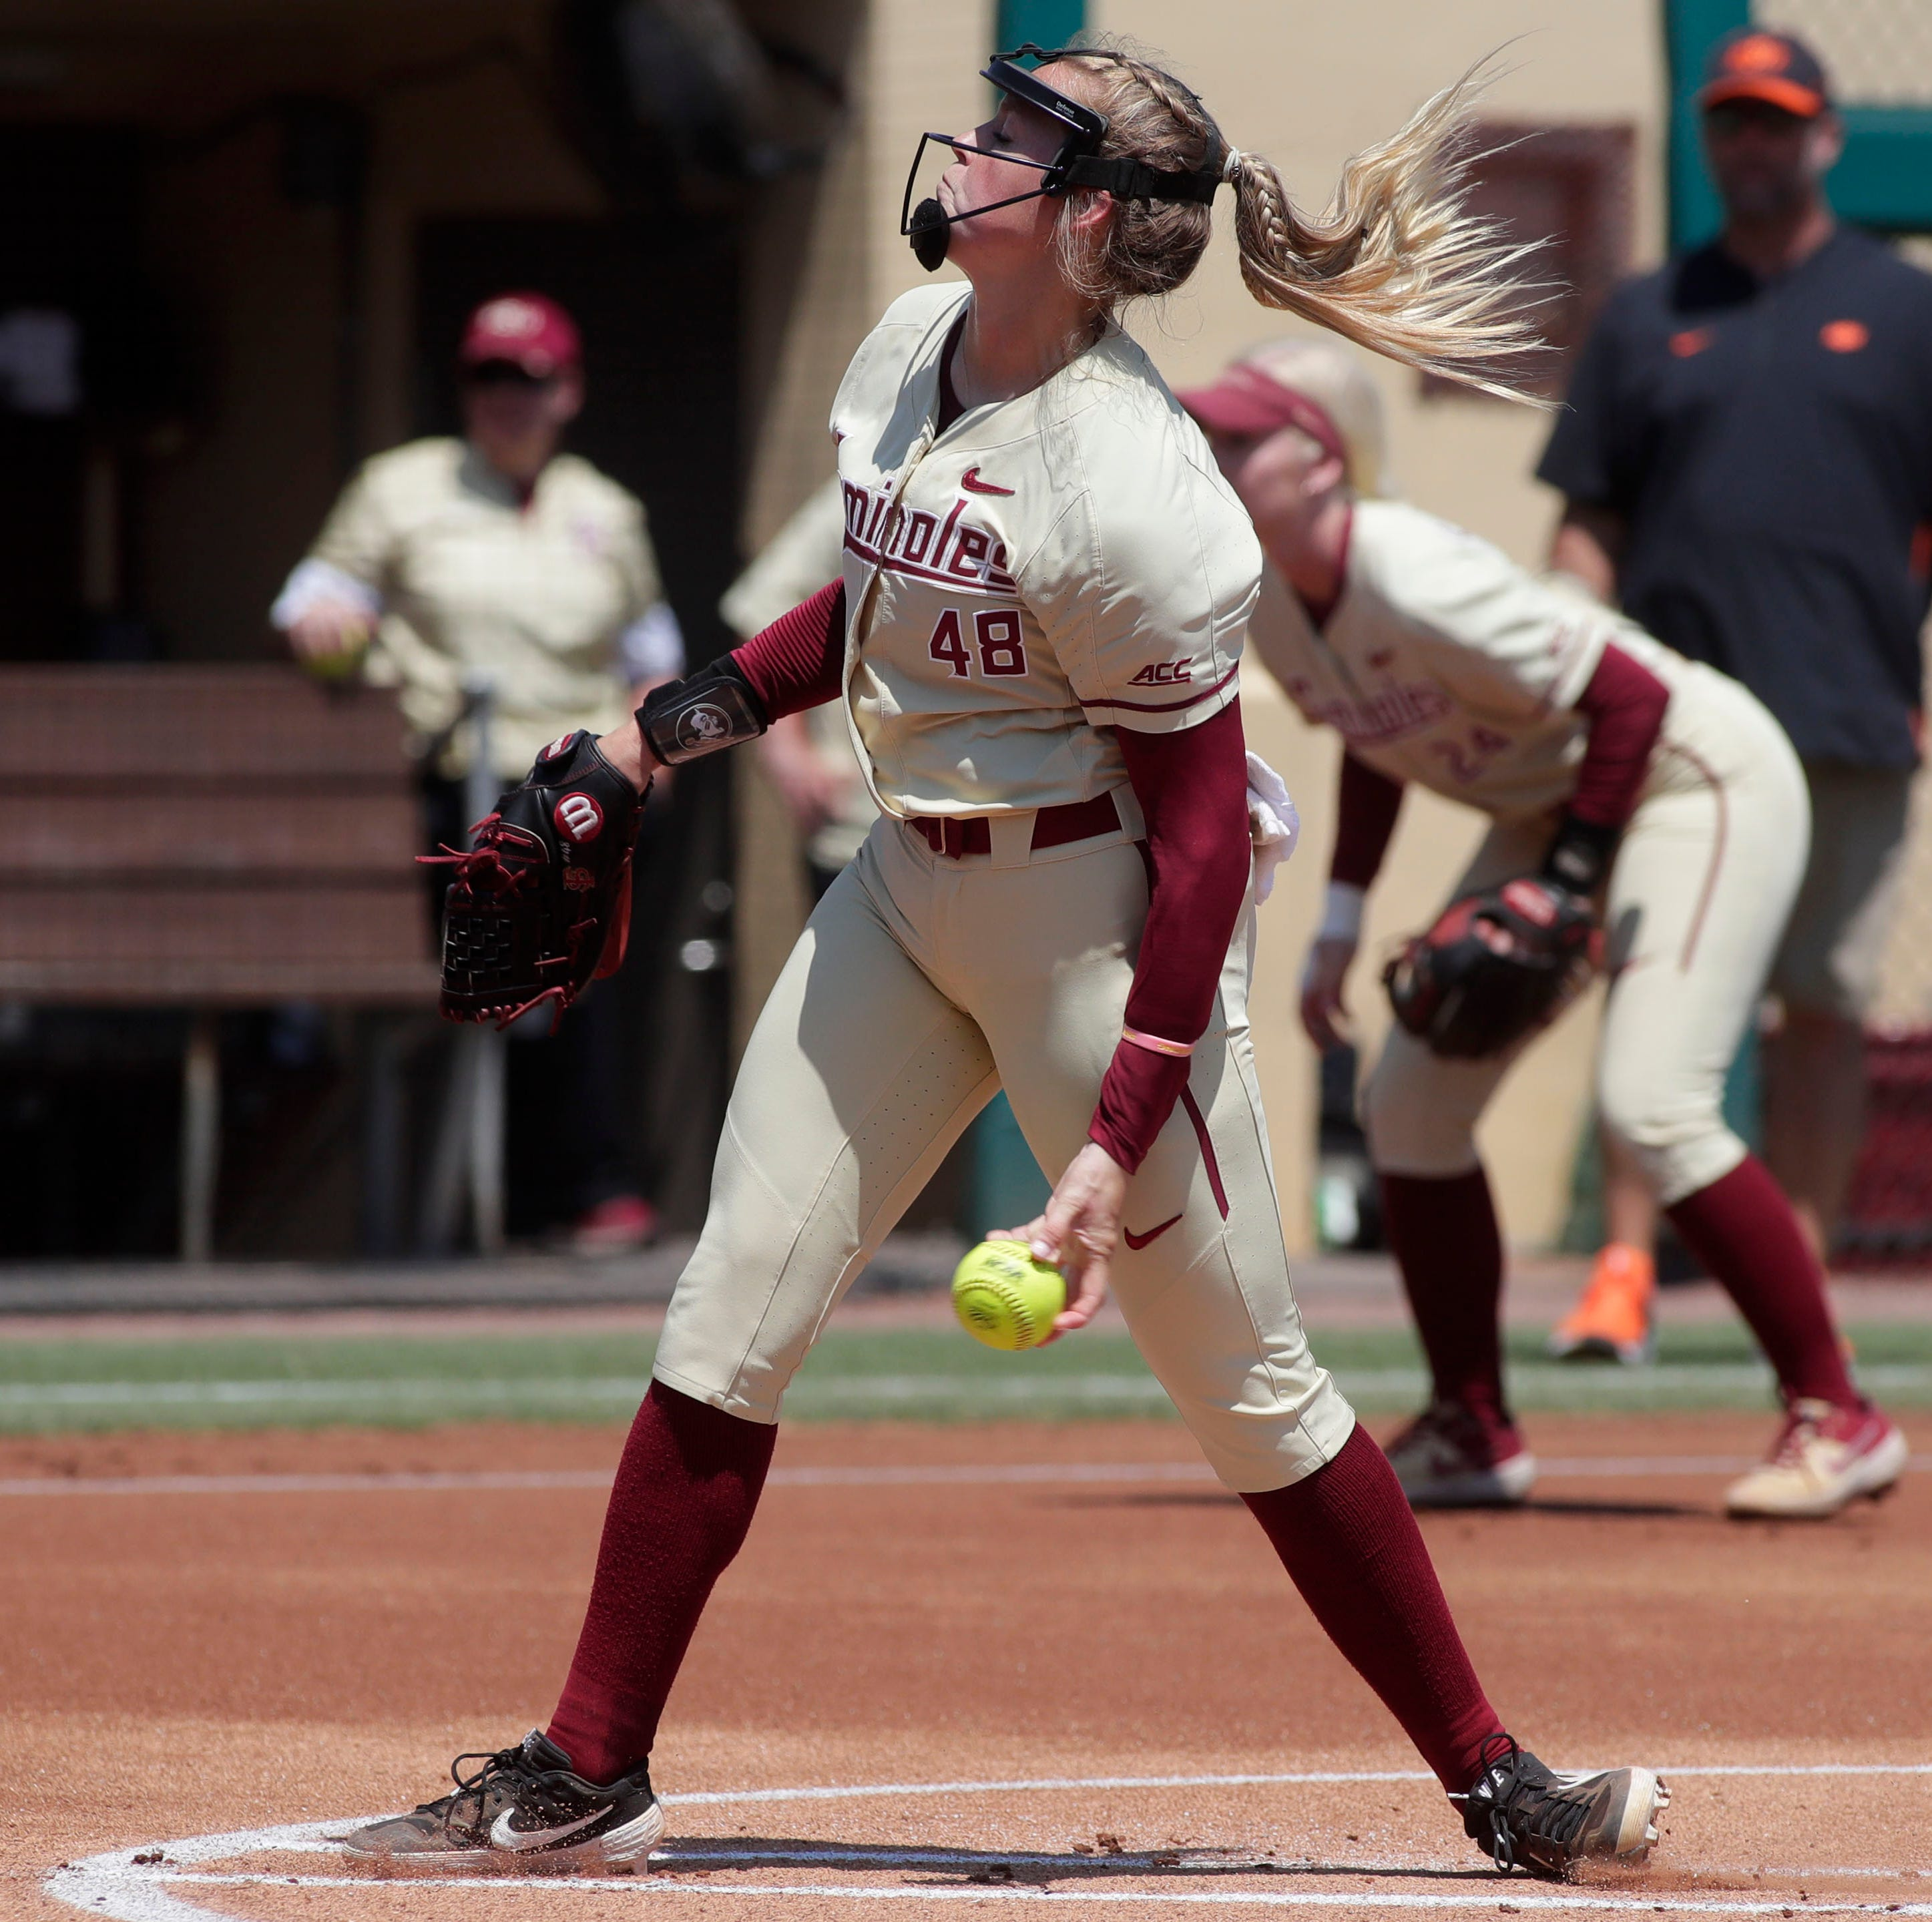 Meghan King's competitive drive made her one of Florida State softball's best